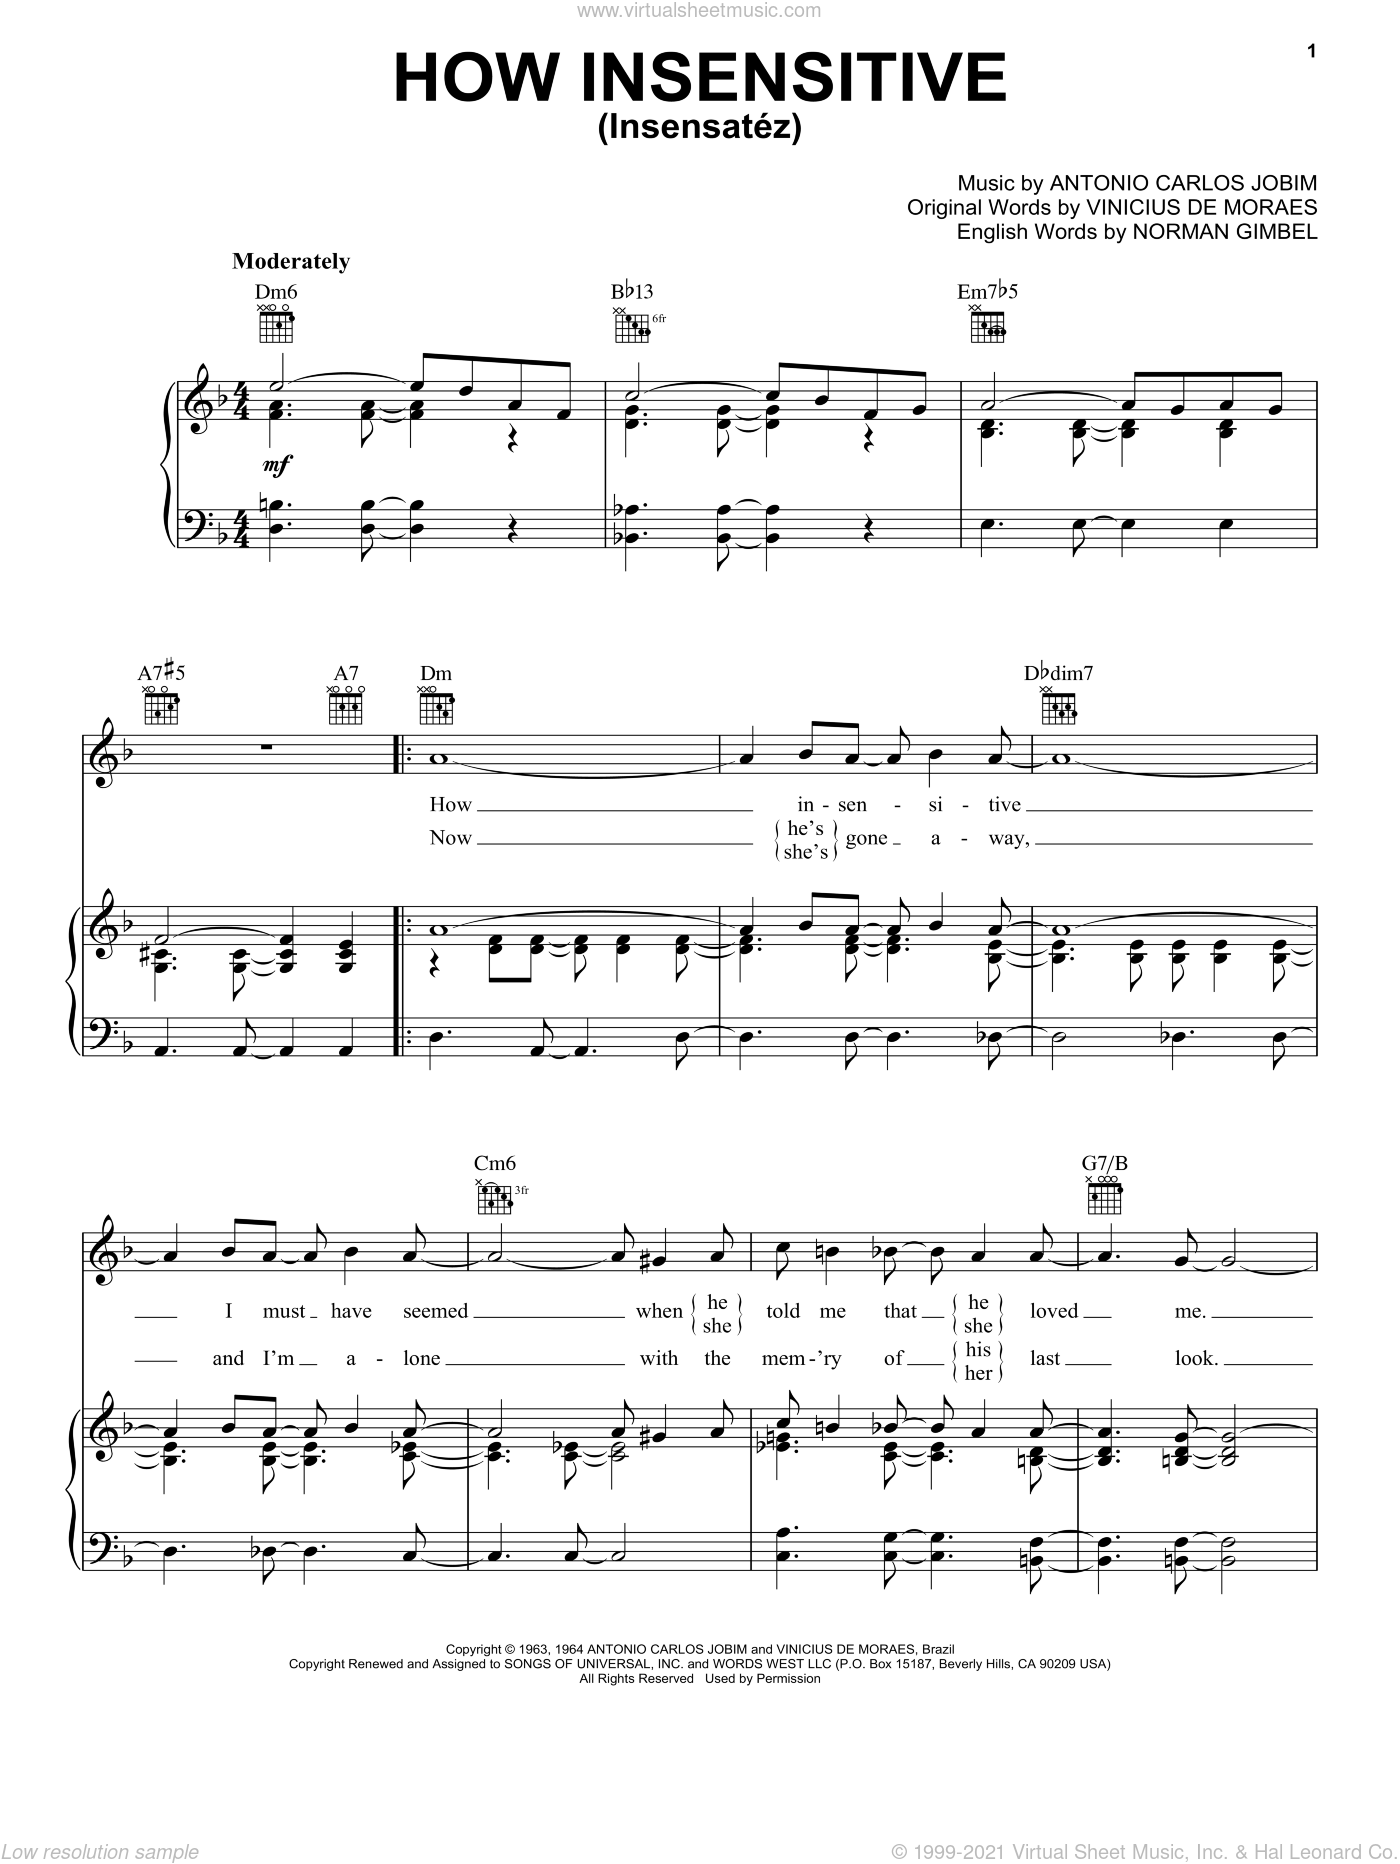 How Insensitive (Insensatez) sheet music for voice, piano or guitar by Antonio Carlos Jobim, Frank Sinatra, Norman Gimbel and Vinicius de Moraes, intermediate skill level